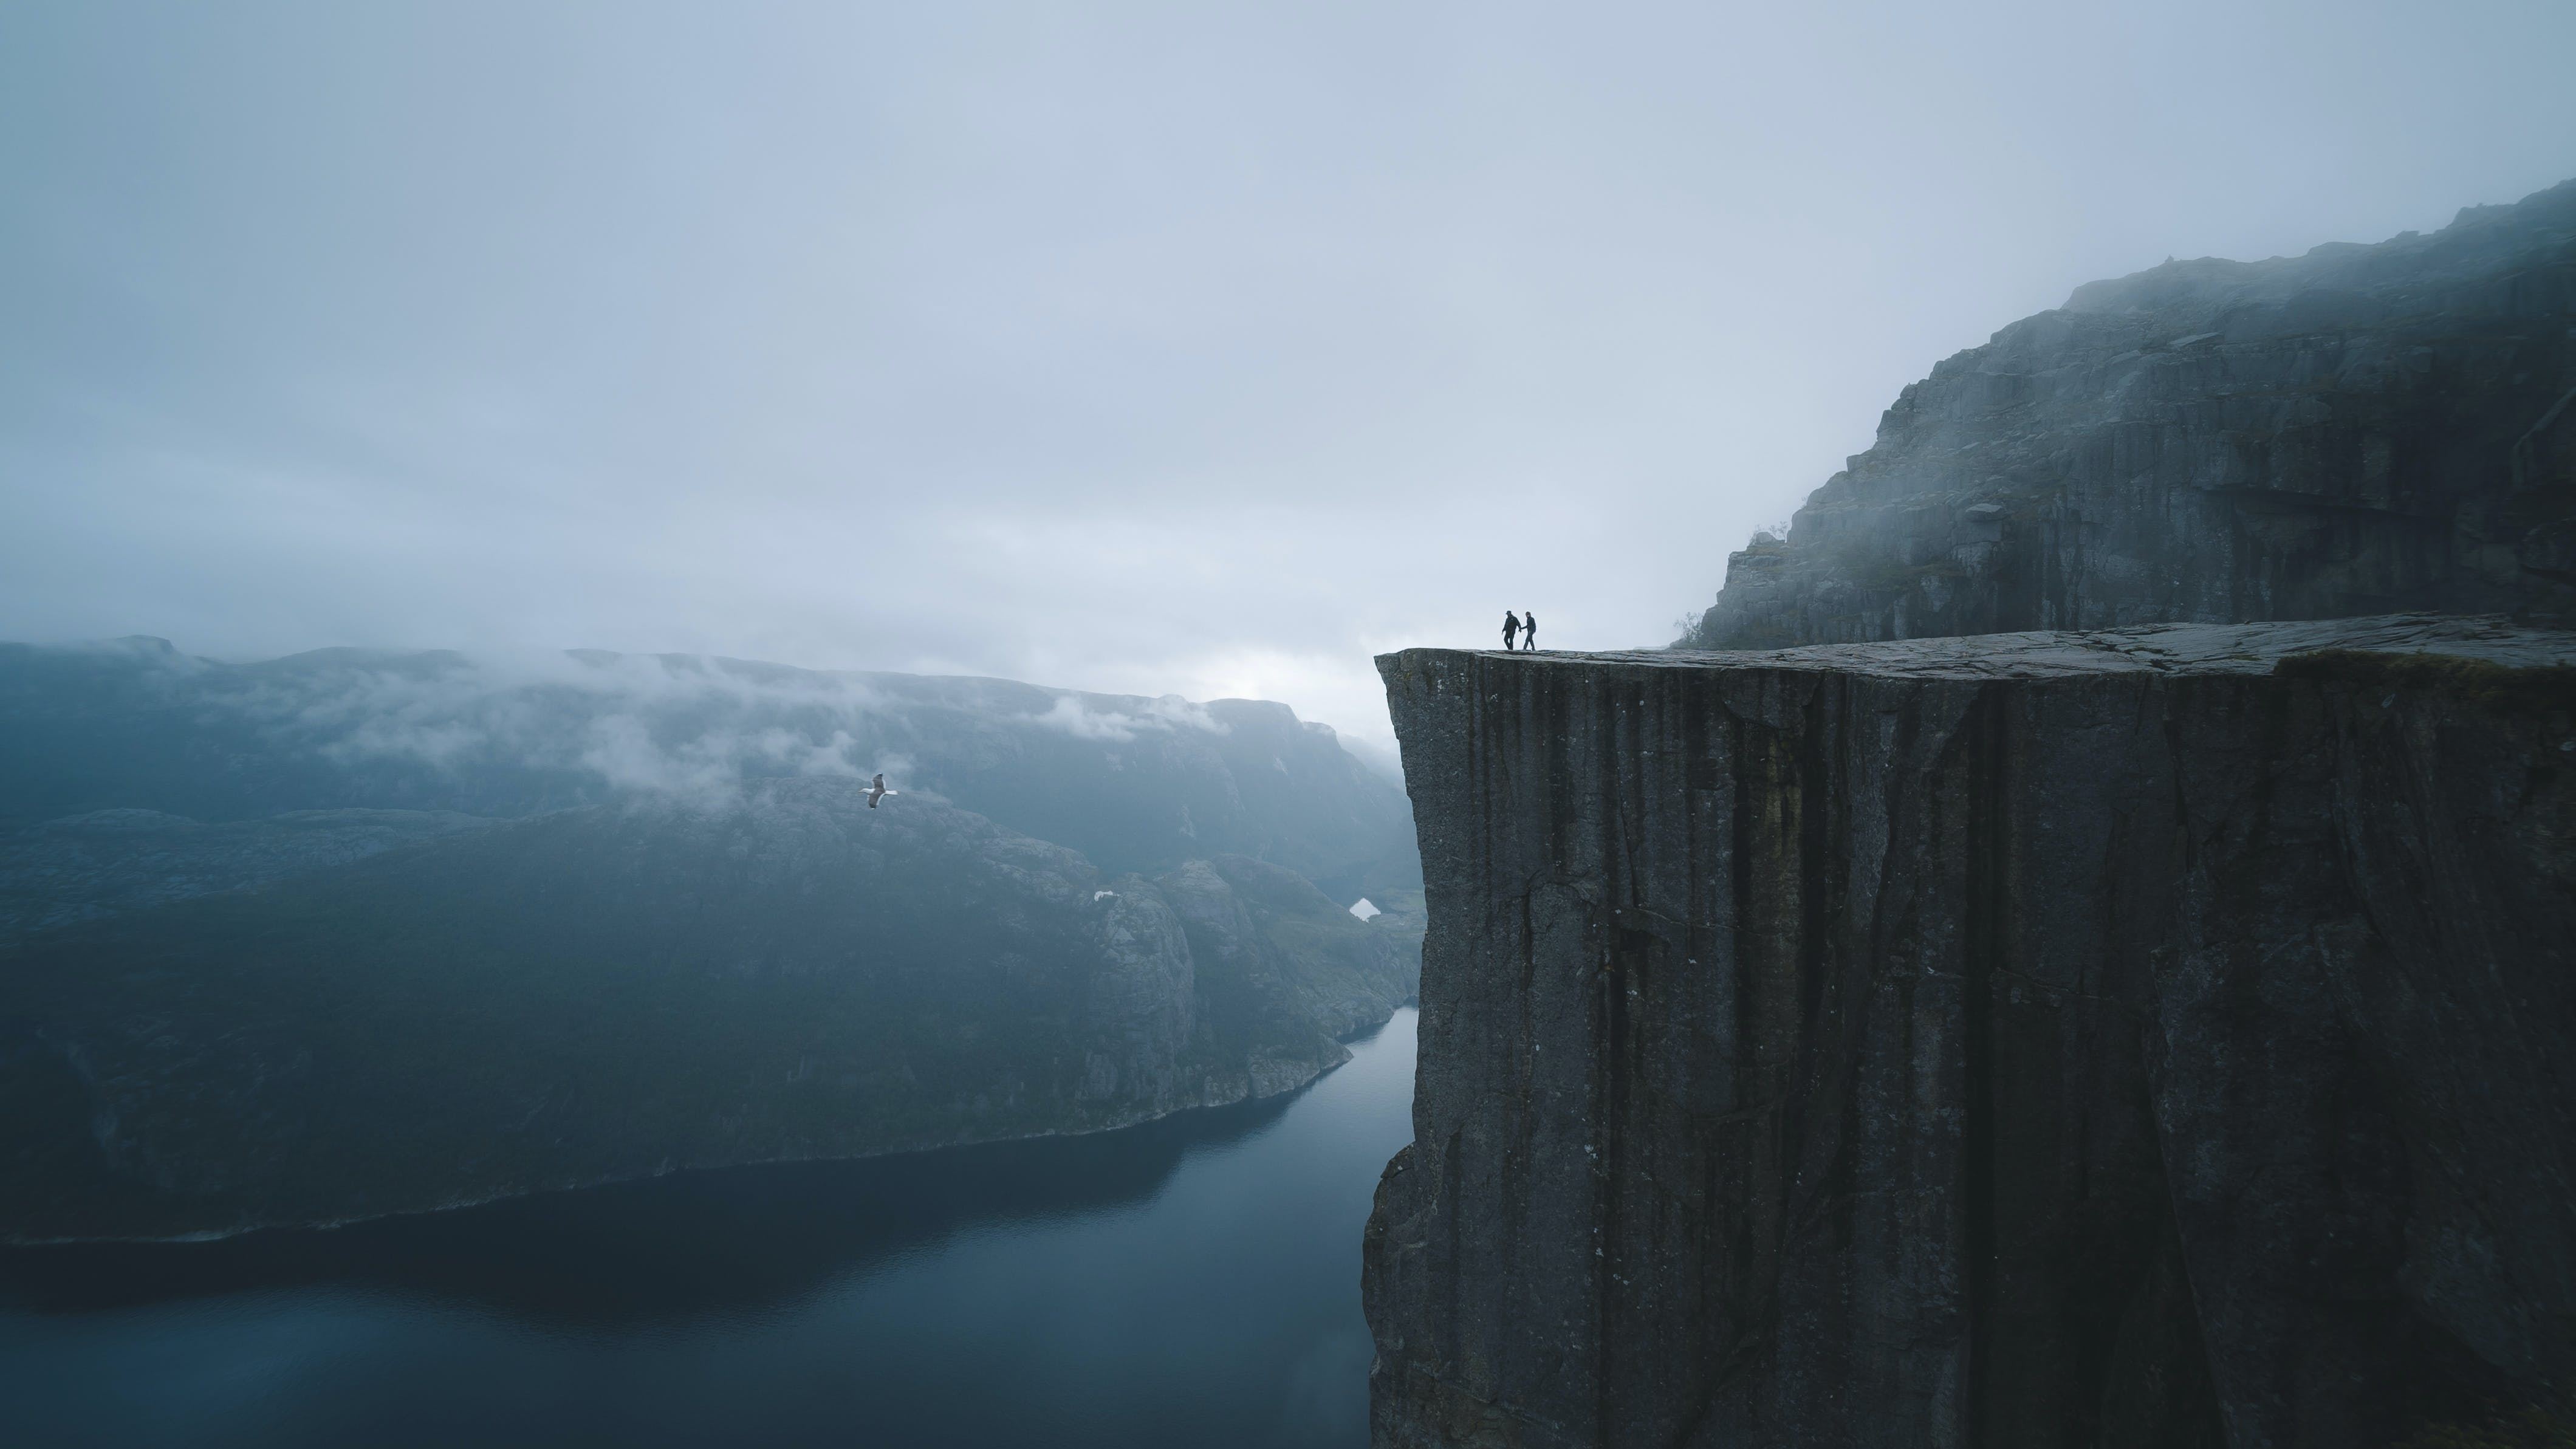 Two People On Mountain Cliff